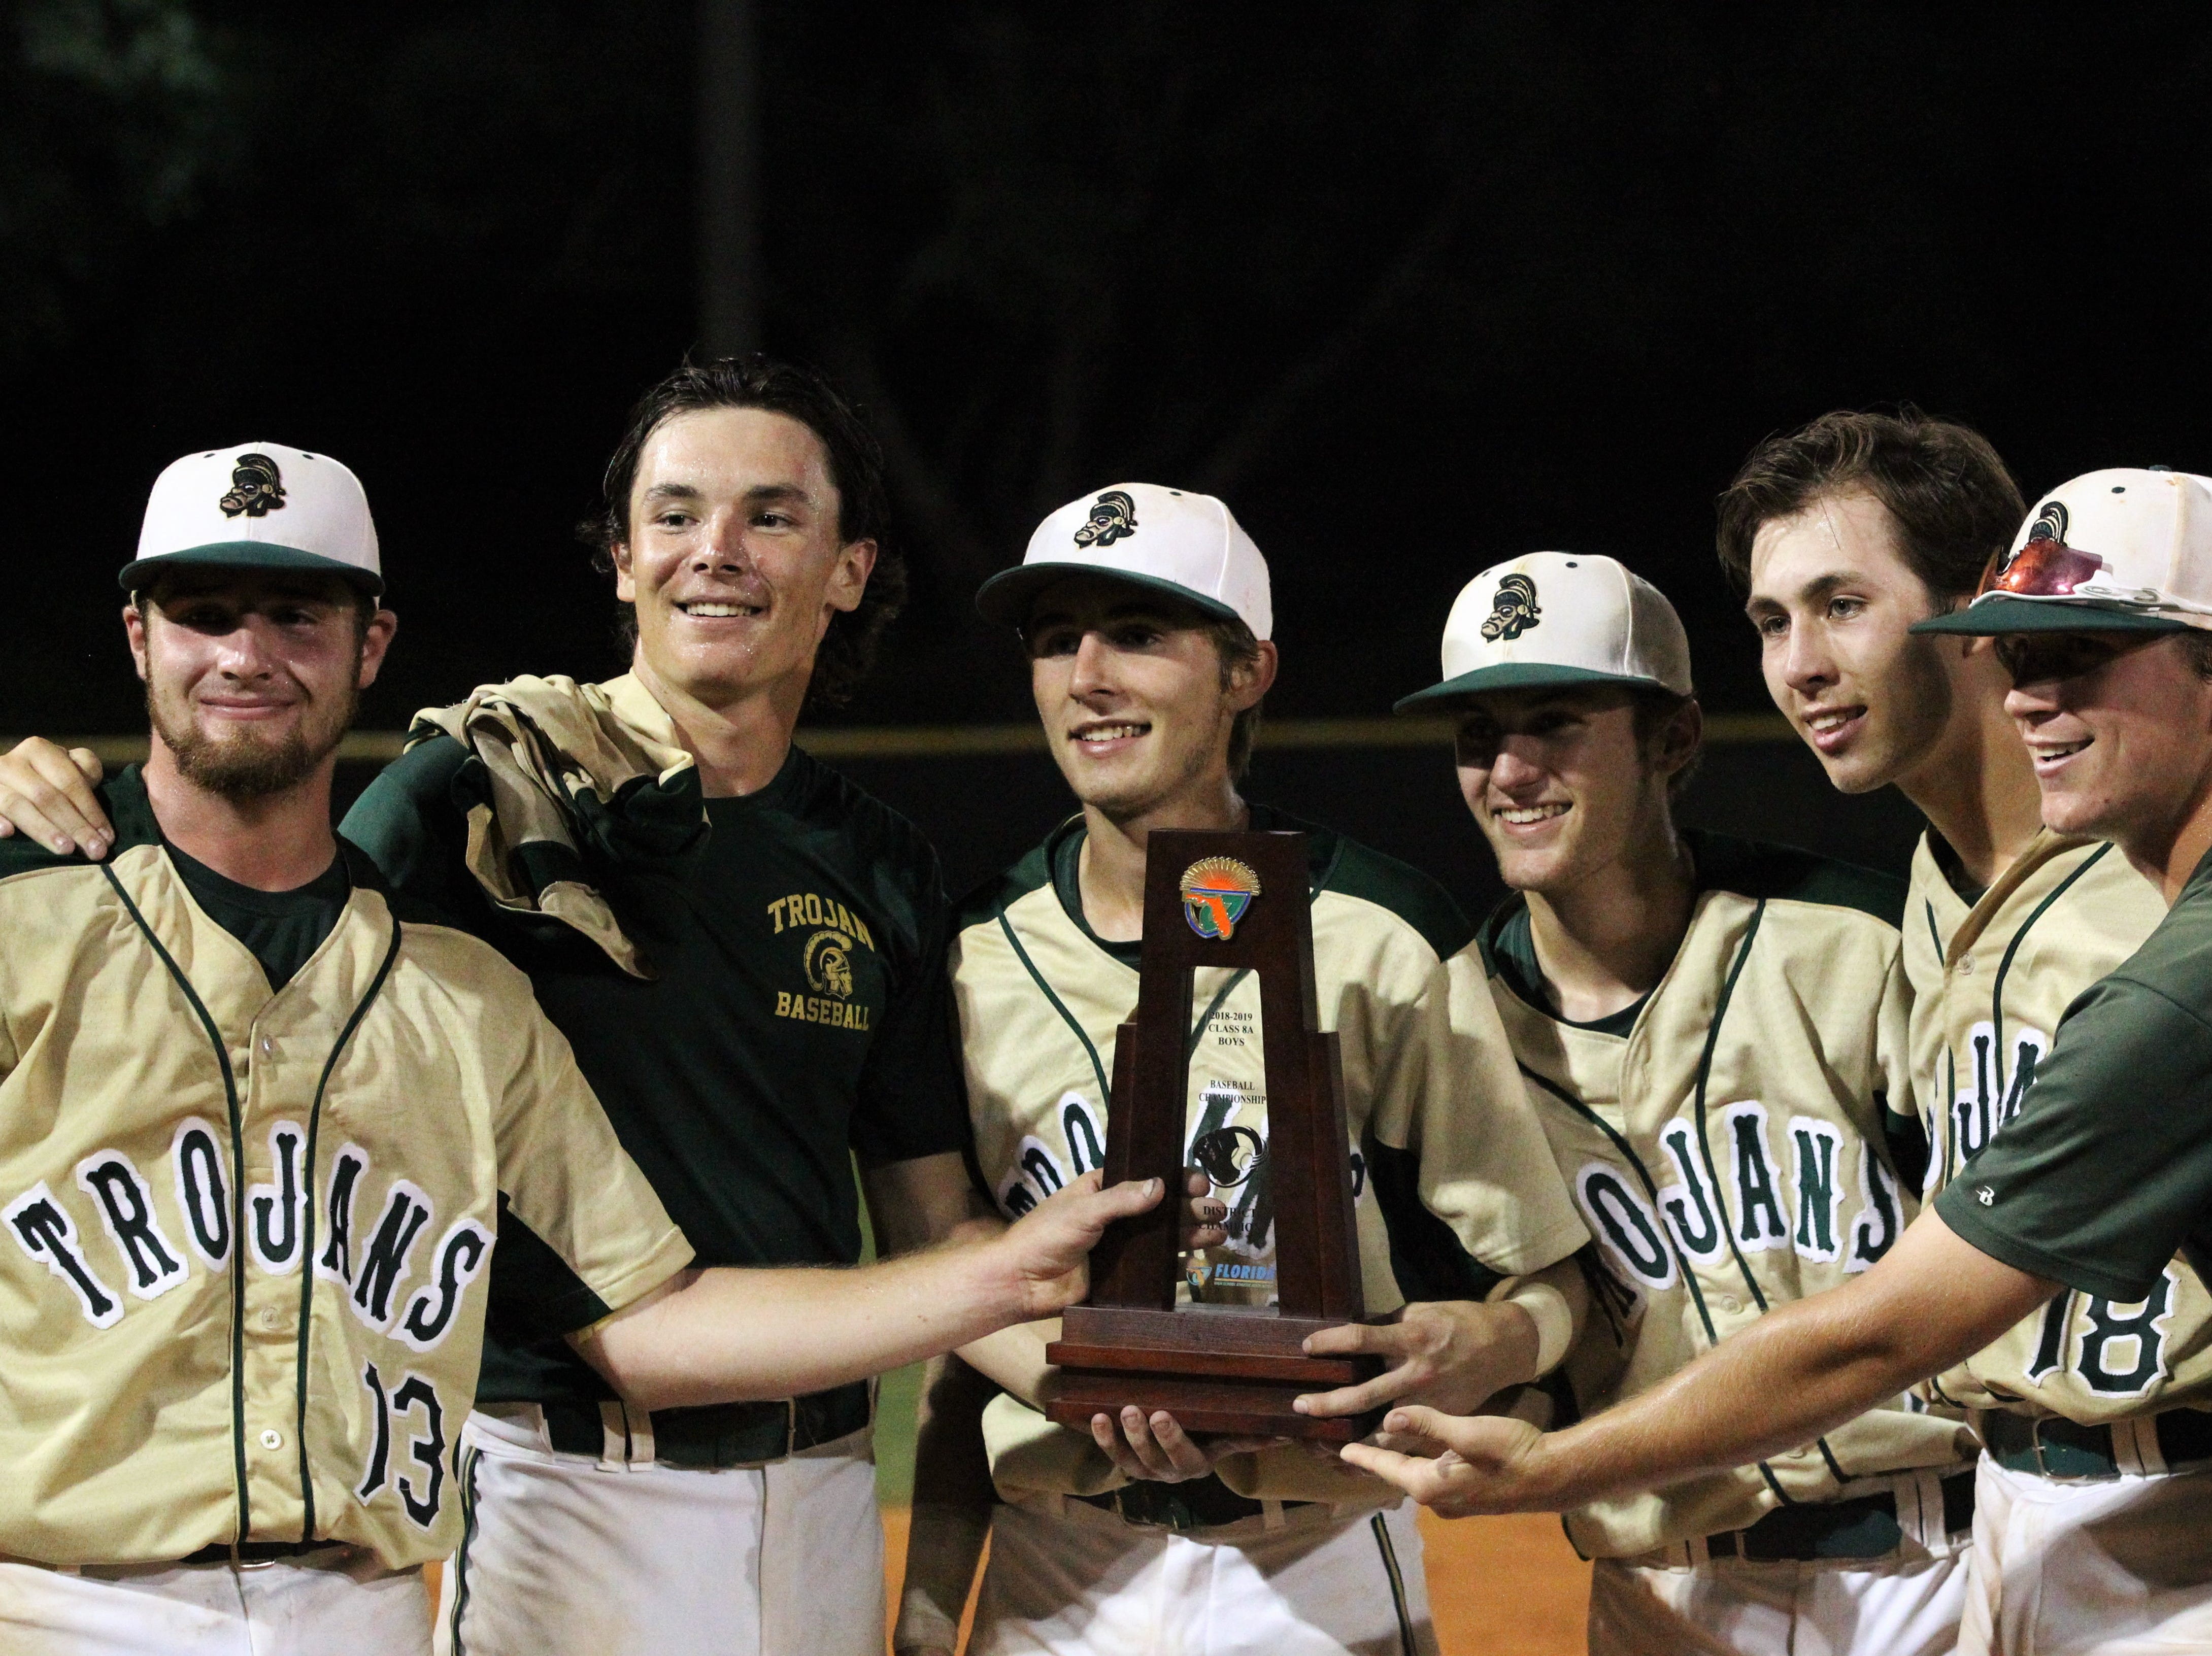 Lincoln seniors Nick Ferrara, Shawn Snyder, Jackson White, Caleb Kittrell, Hunter Peschl and Beau Evans take a photo after the Trojans beat Chiles 5-4  in 10 innings during a District 2-8A championship game on Thursday, May 9, 2019.